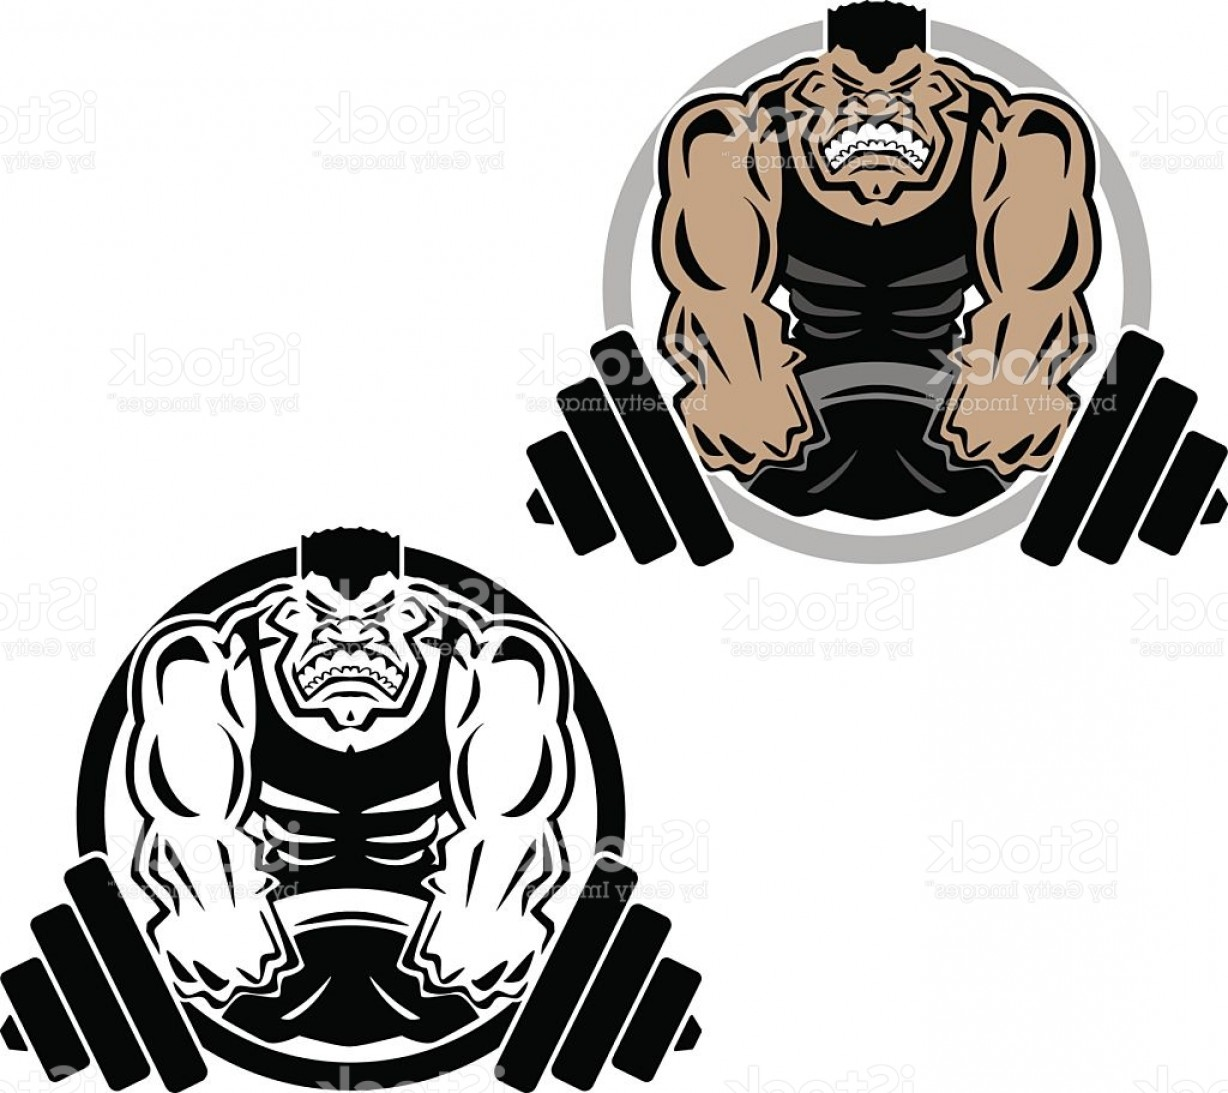 Weightlifter Vector Art: Weightlifting Muscle Fitness Gym Logo Illustration Gm